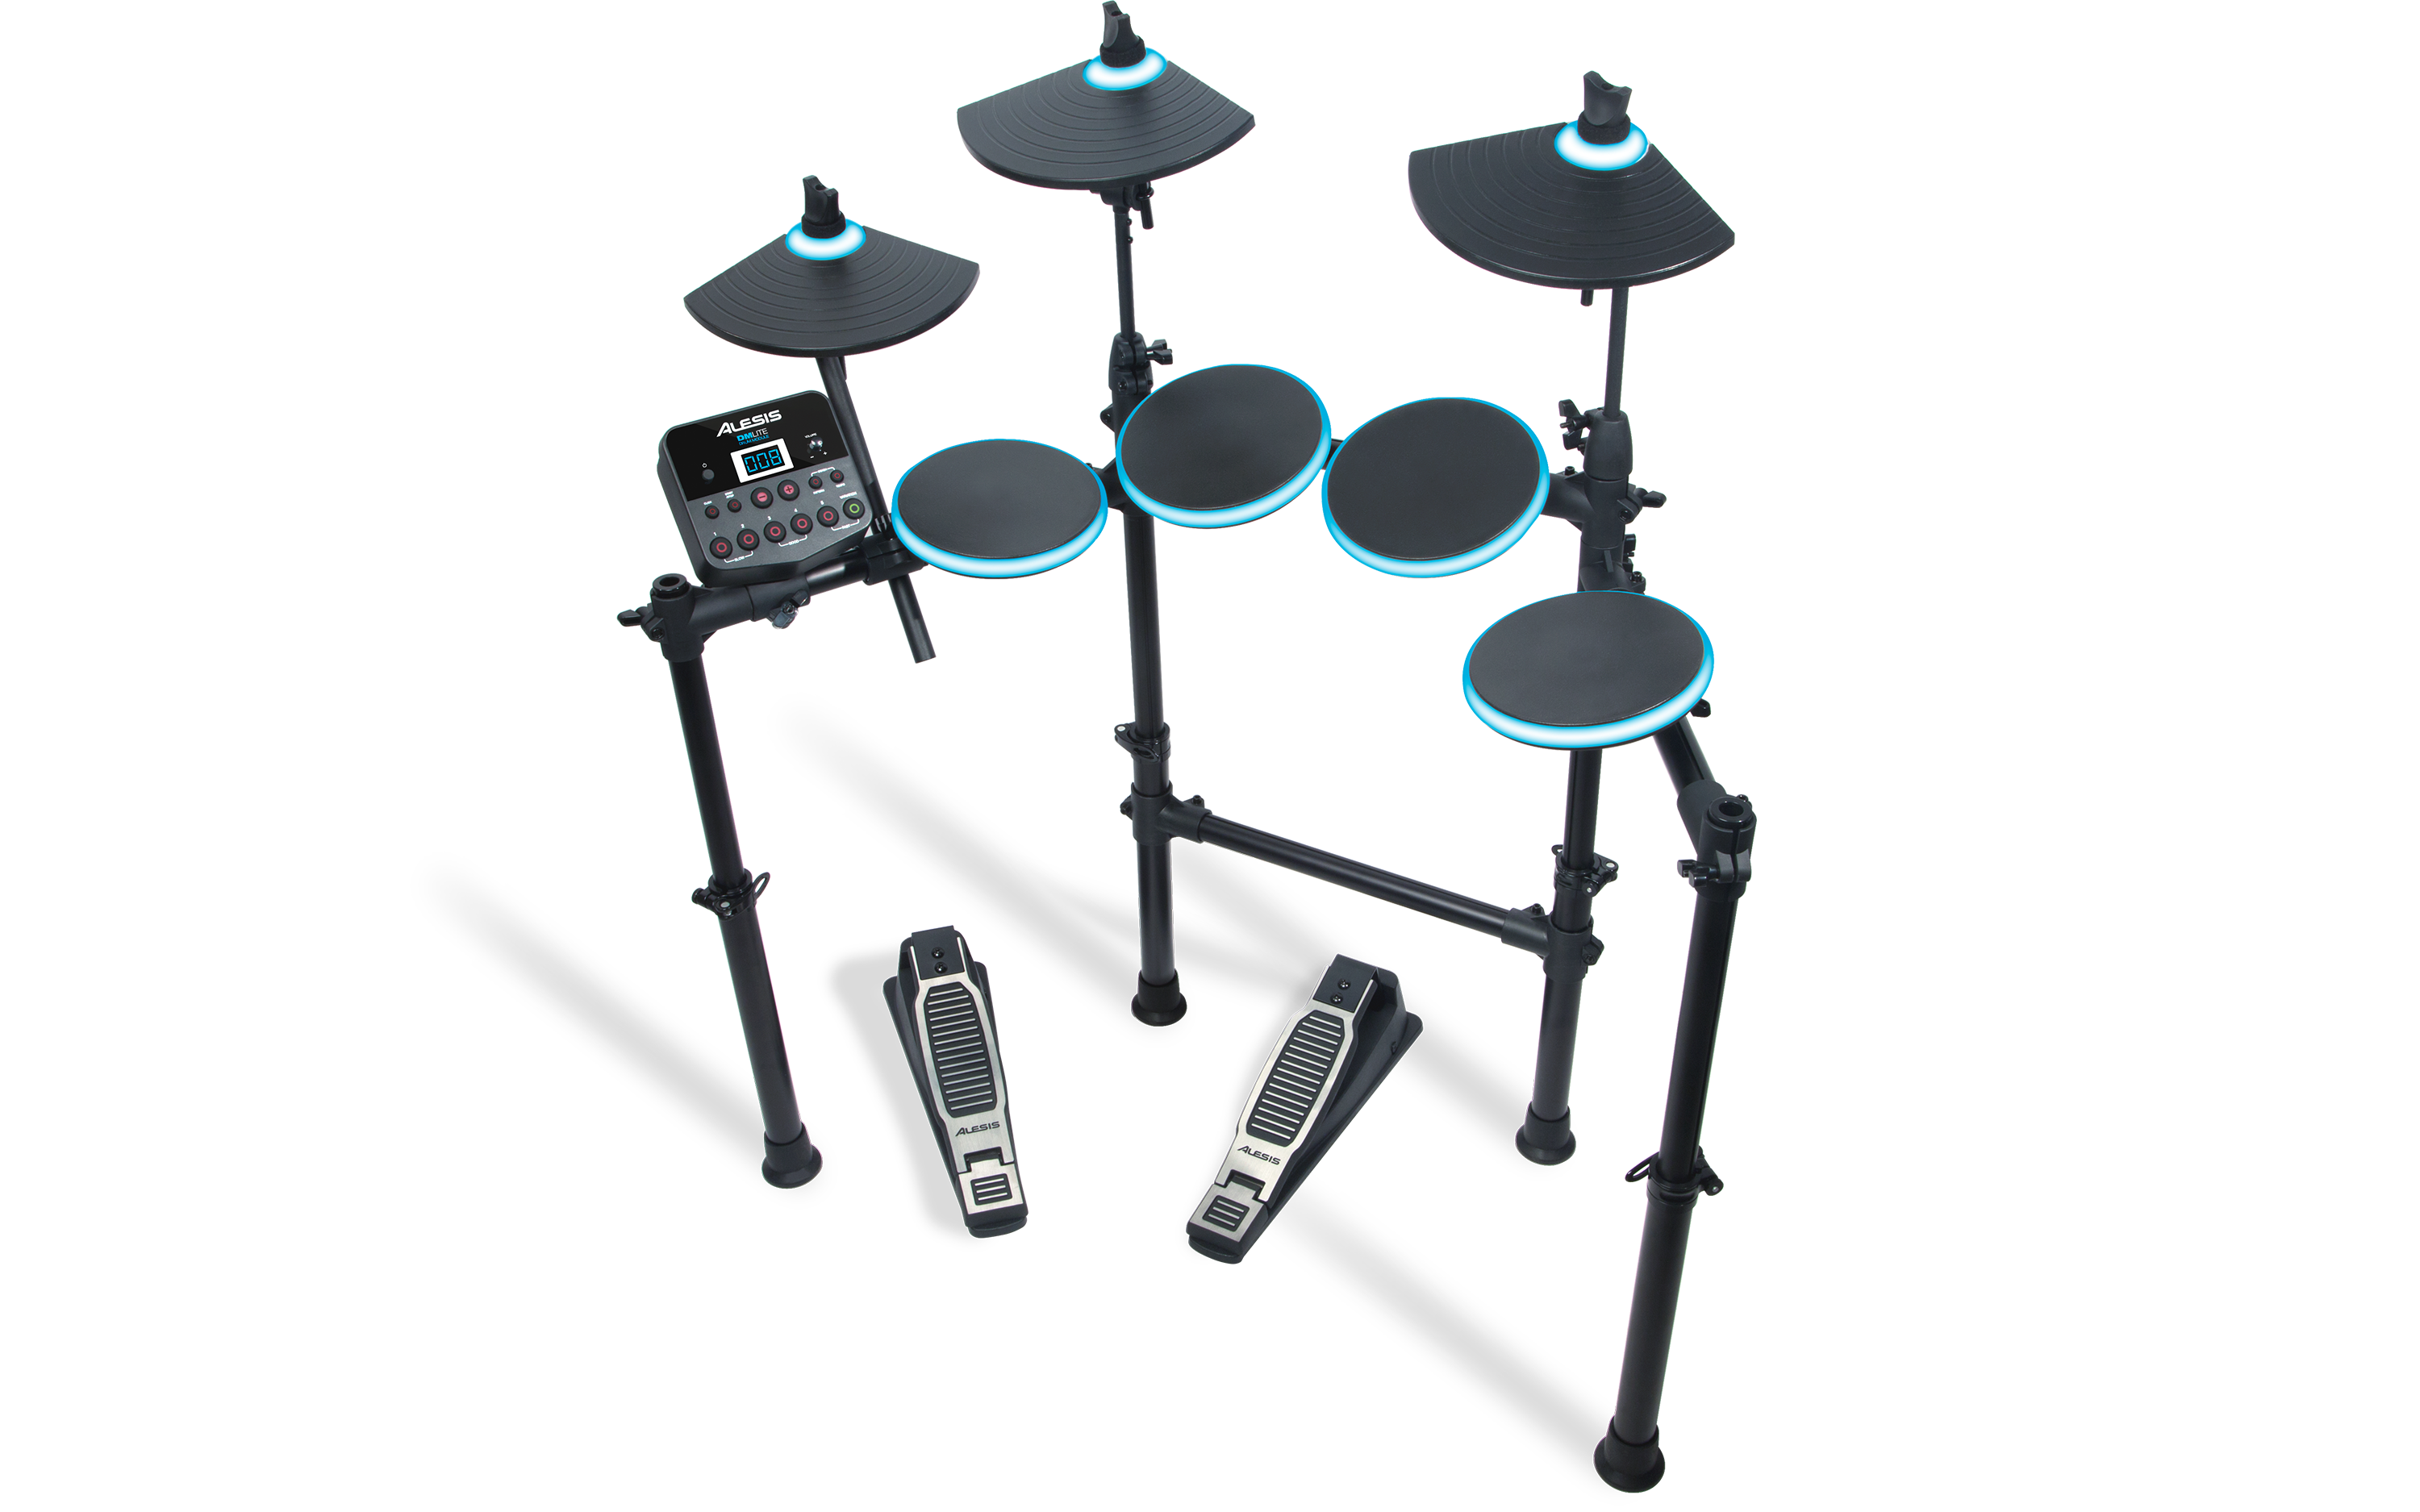 Your Guide to Alesis Electronic Drums - Which Kit Is the Best?